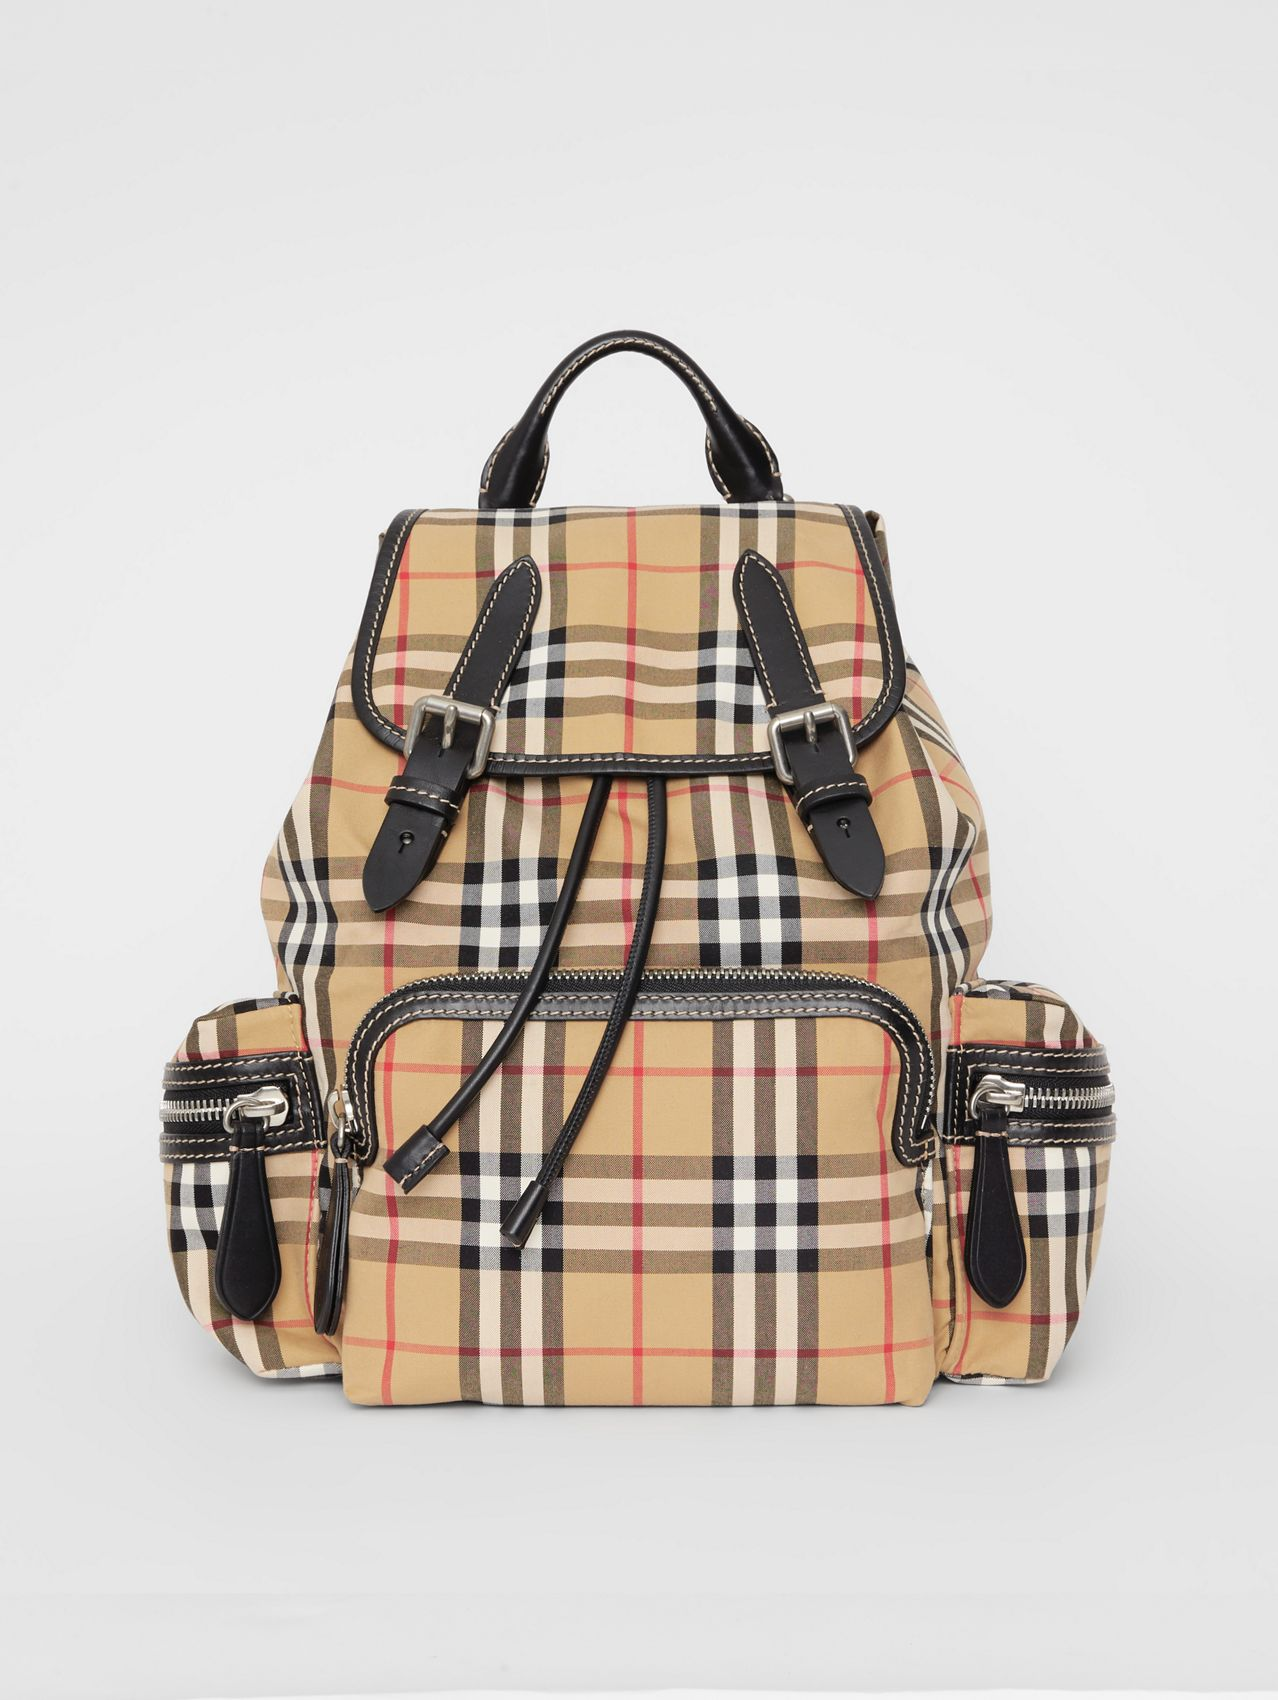 Sac The Rucksack moyen en toile de coton à motif Vintage check in Jaune Antique